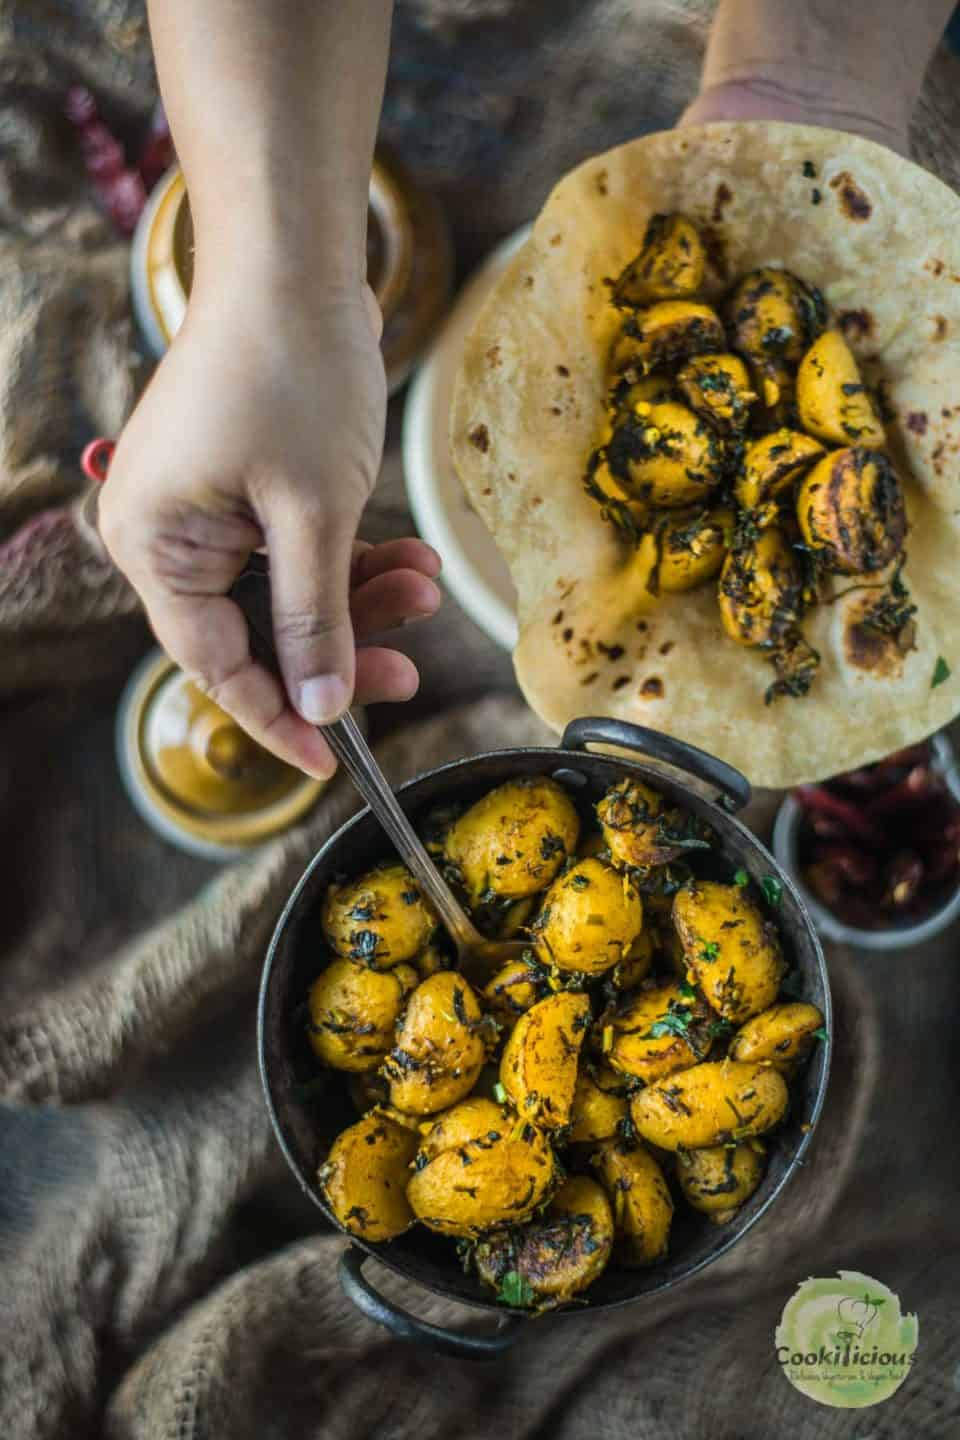 a hand digging into a bowl of Aloo Methi using a spoon